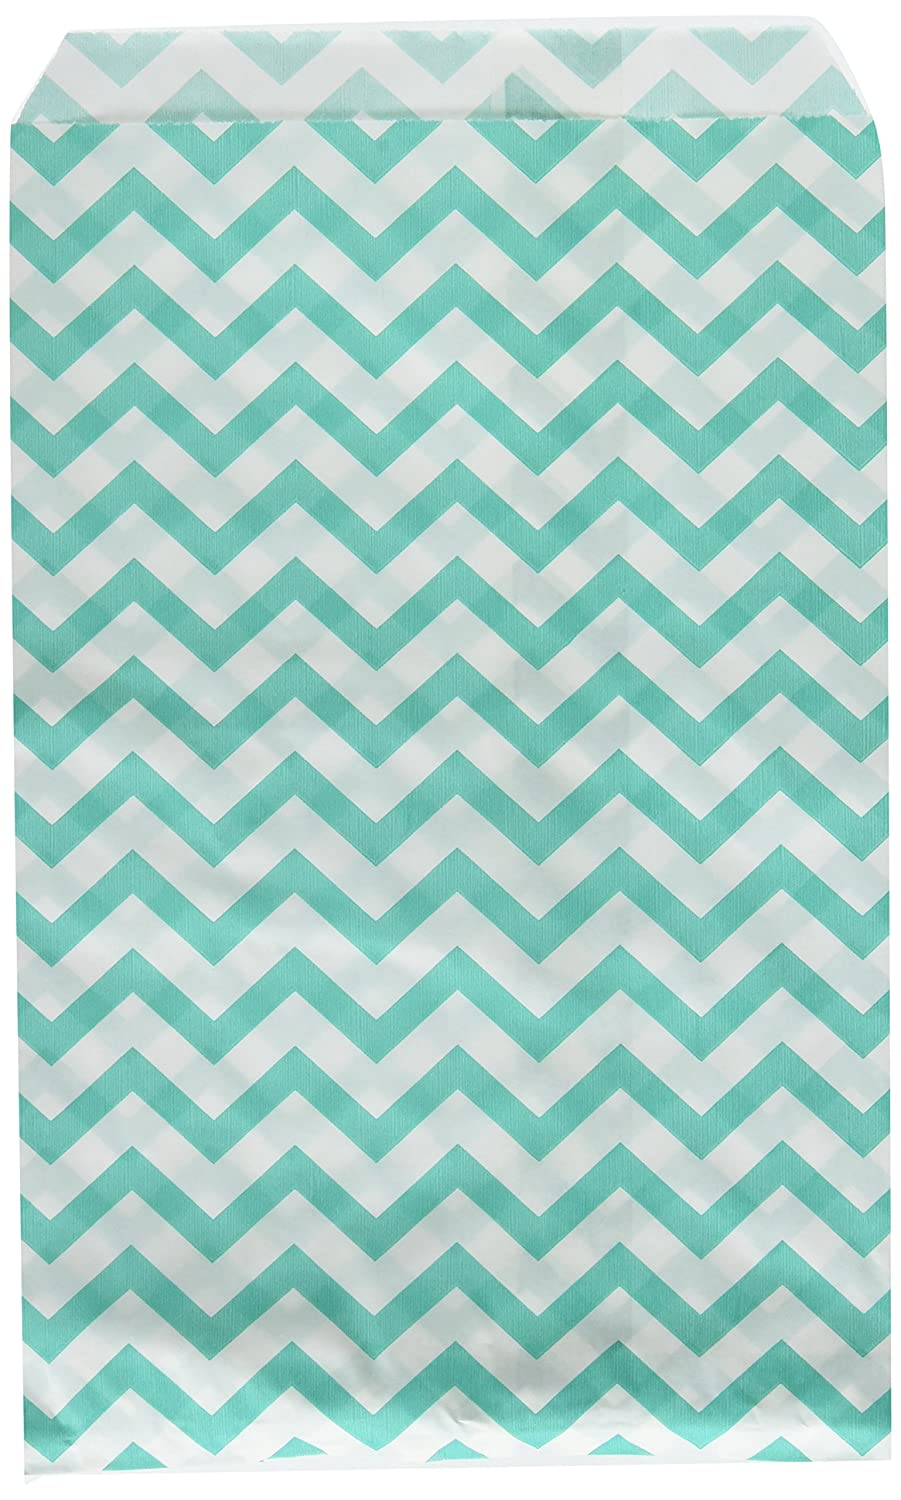 """200 pcs Turquoise Chevron Paper Gift Bags Shopping Sales Tote Bags 6"""" x 9"""" Zig Zag Design-Caddy Bay Collection"""